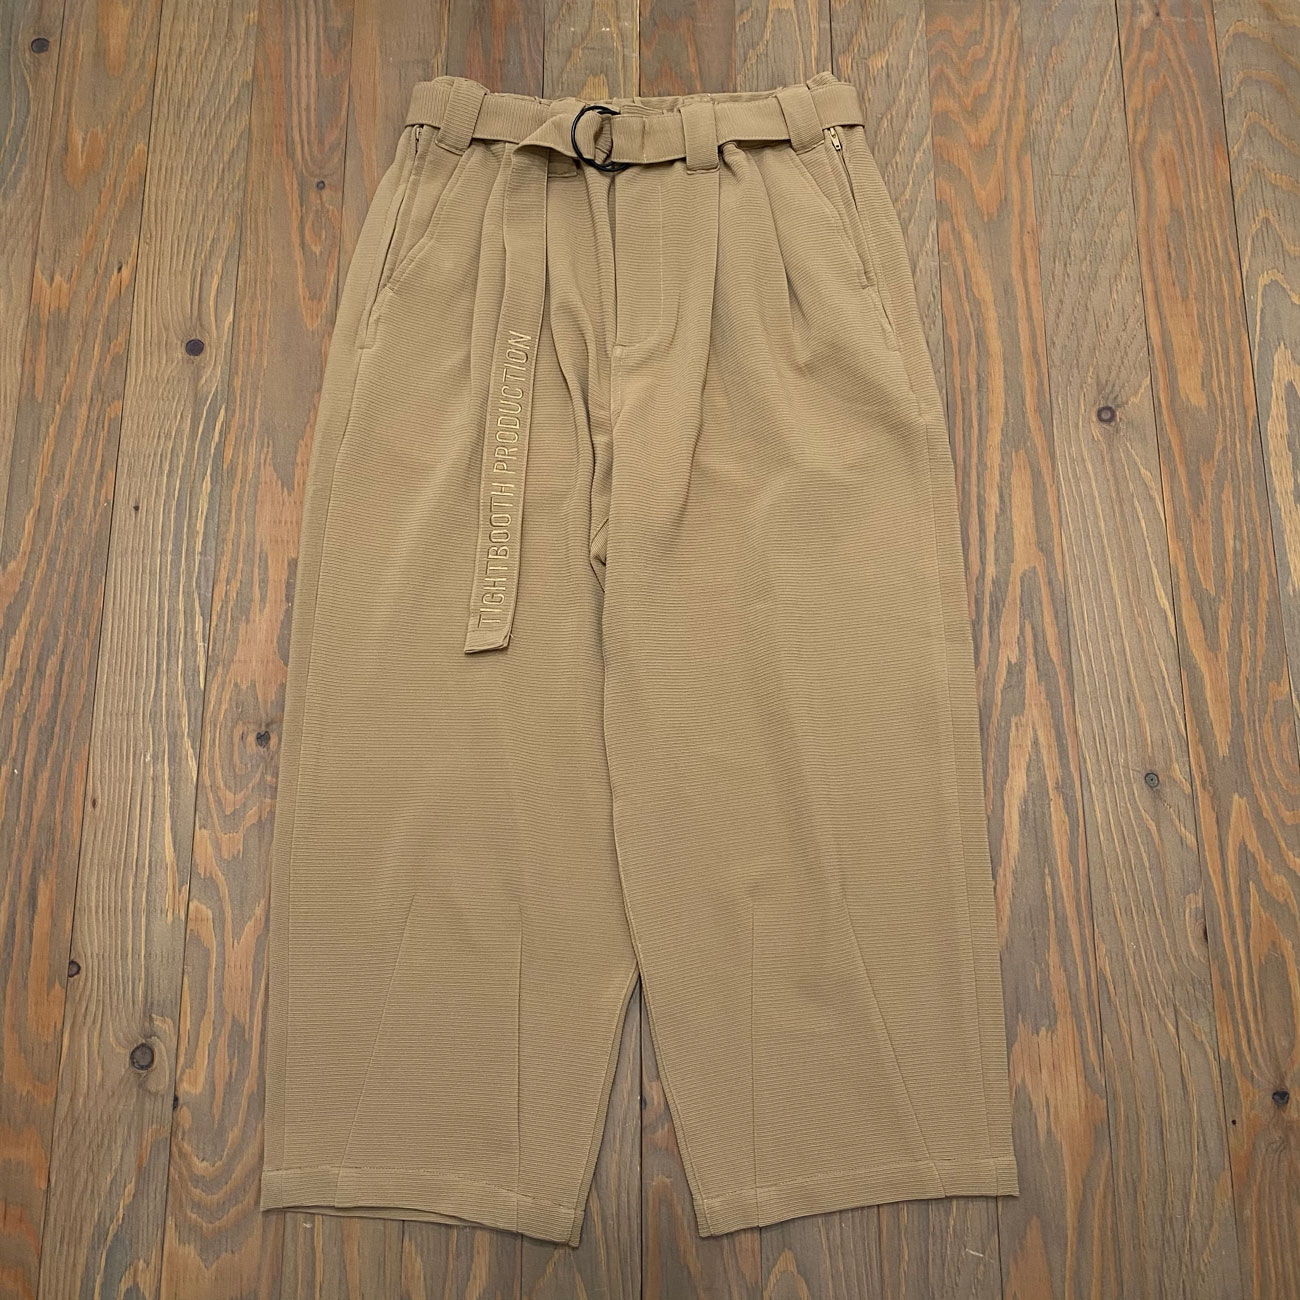 TIGHTBOOTH RIPPLE KNIT BAGGY SLACKS